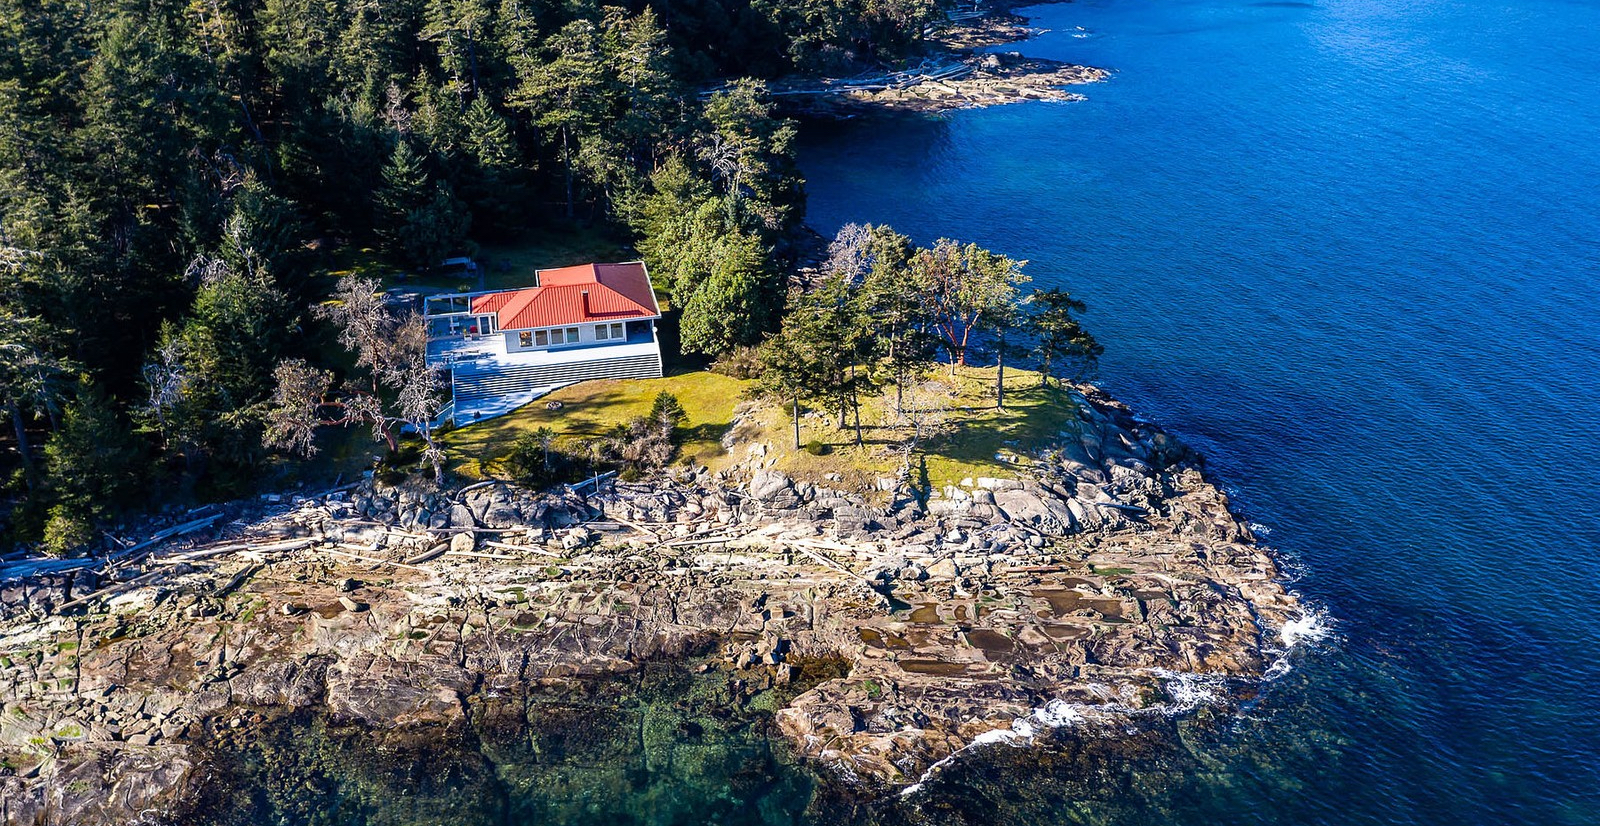 A Look Inside: $7.9M private island paradise for sale in BC (PHOTOS)